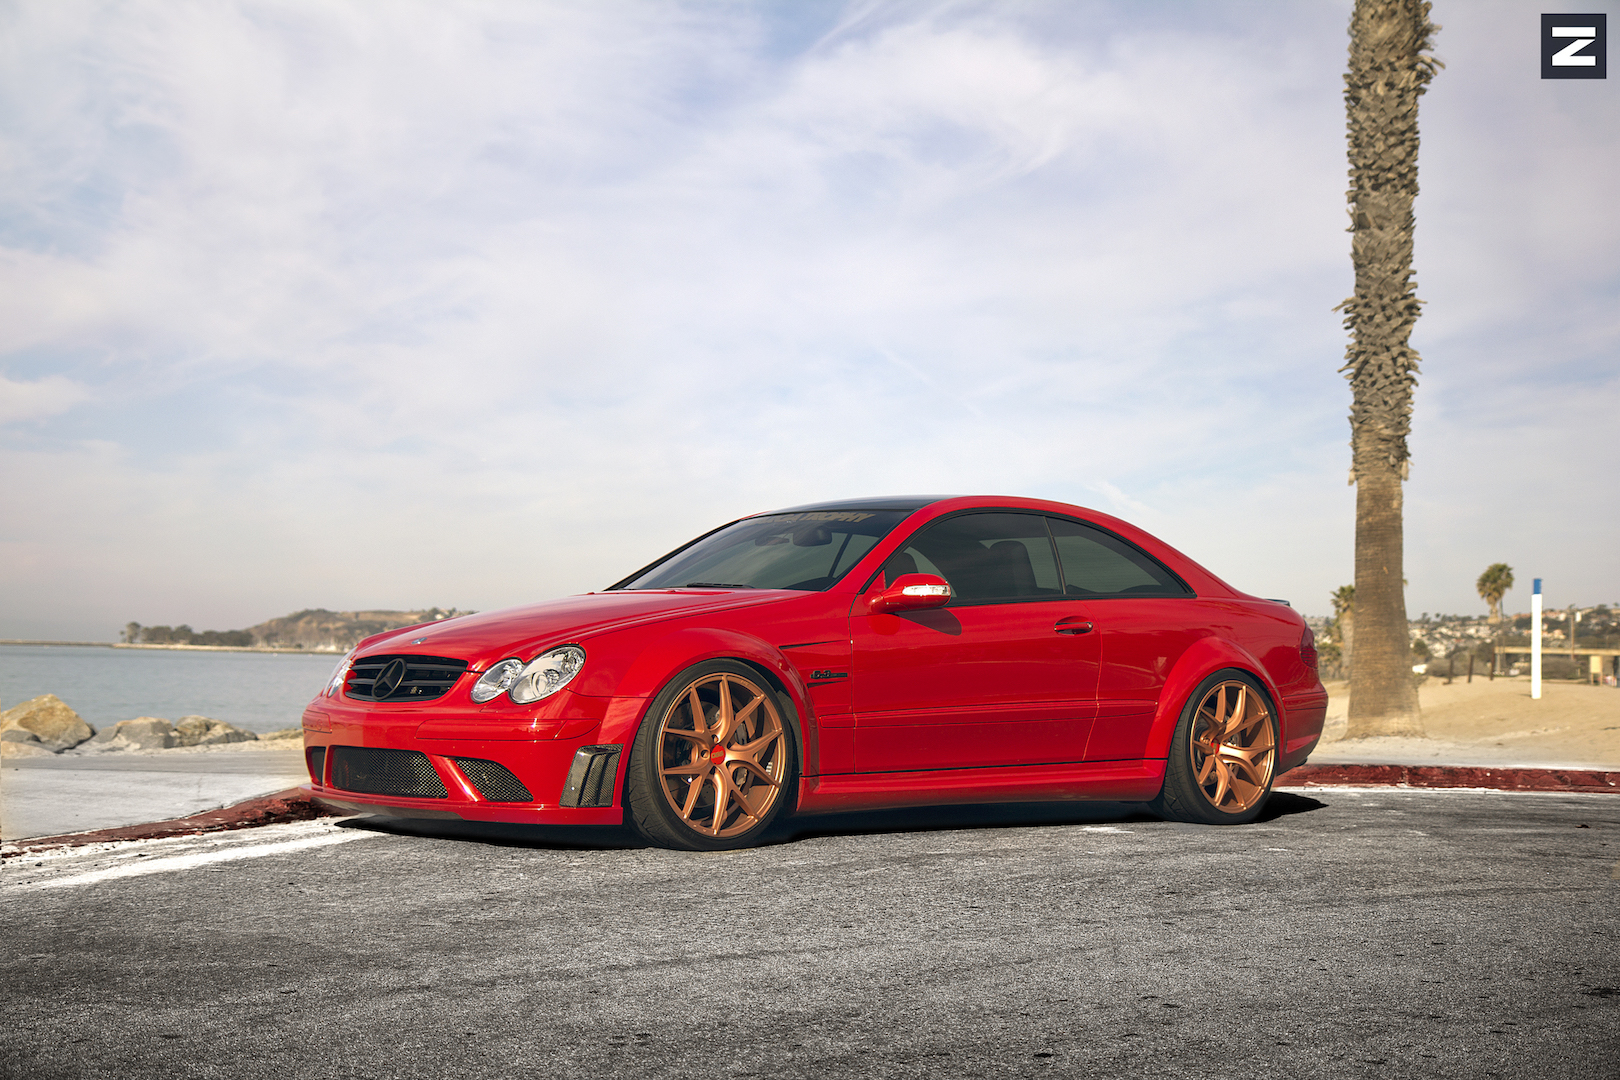 Mercedes Benz CLK63 AMG Red Gold ZS05